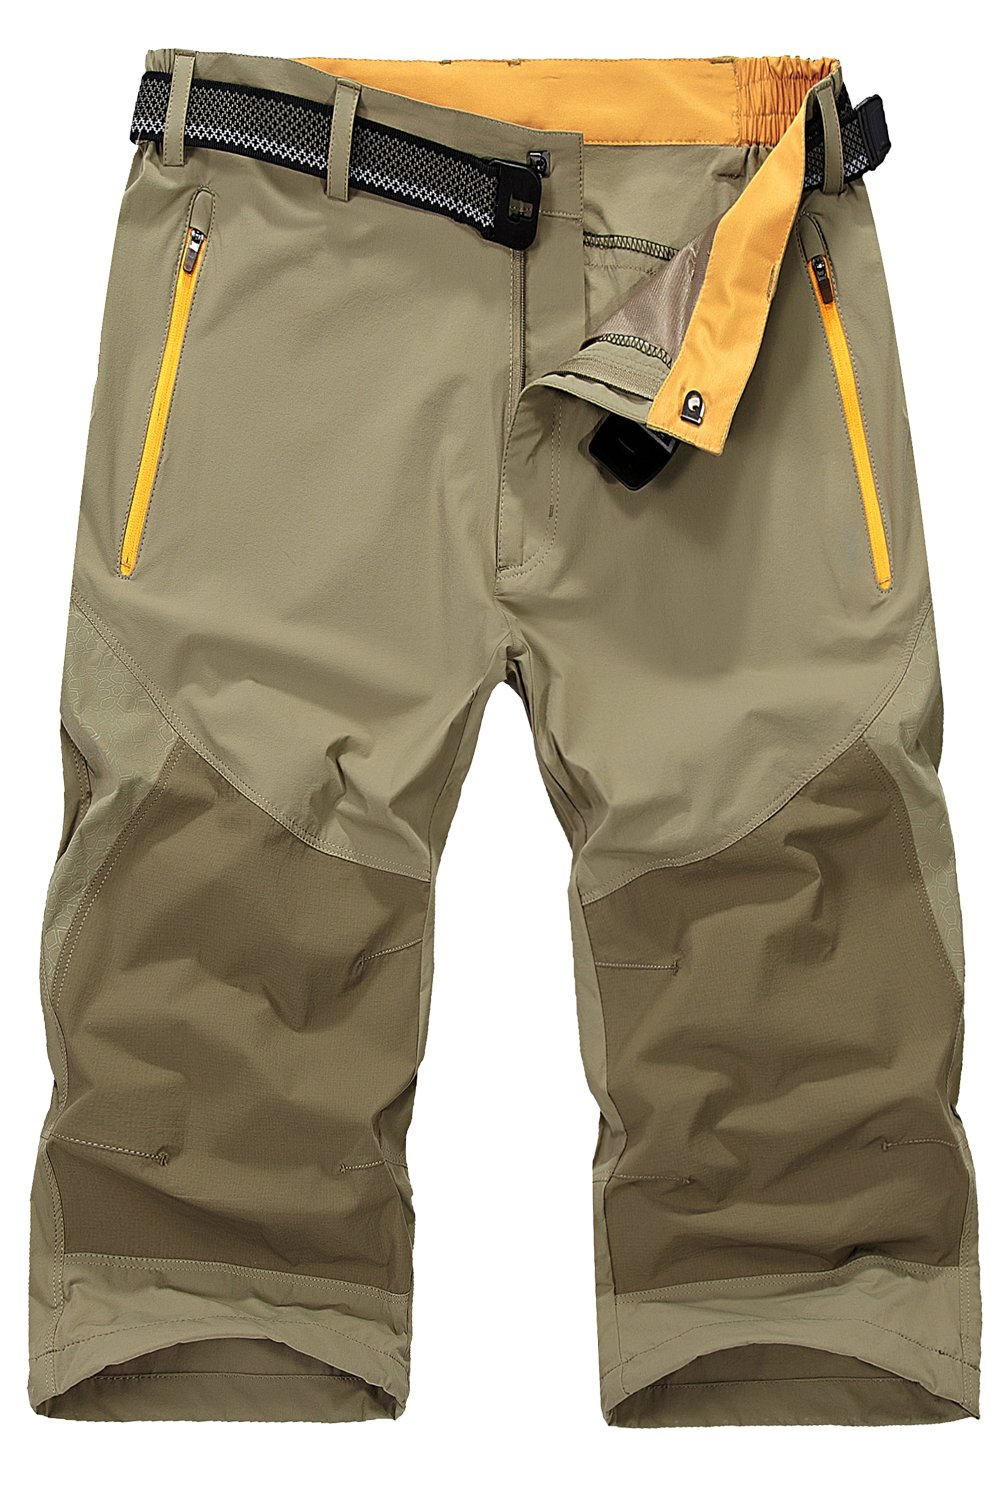 71lE RRzLiL - Mr.Stream Men's Water Resistan Classic Bermuda Beach Quick Drying Cargo Shorts 3/4 Capris Walking Casual Cropped Trousers